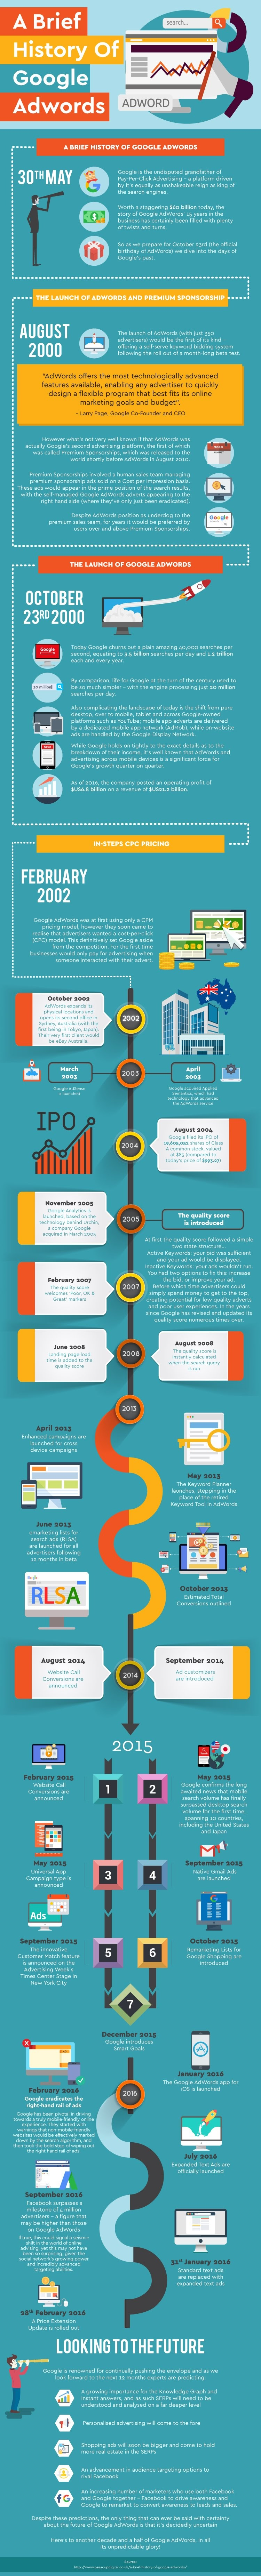 A Brief History Of Google Adwords #Infographic